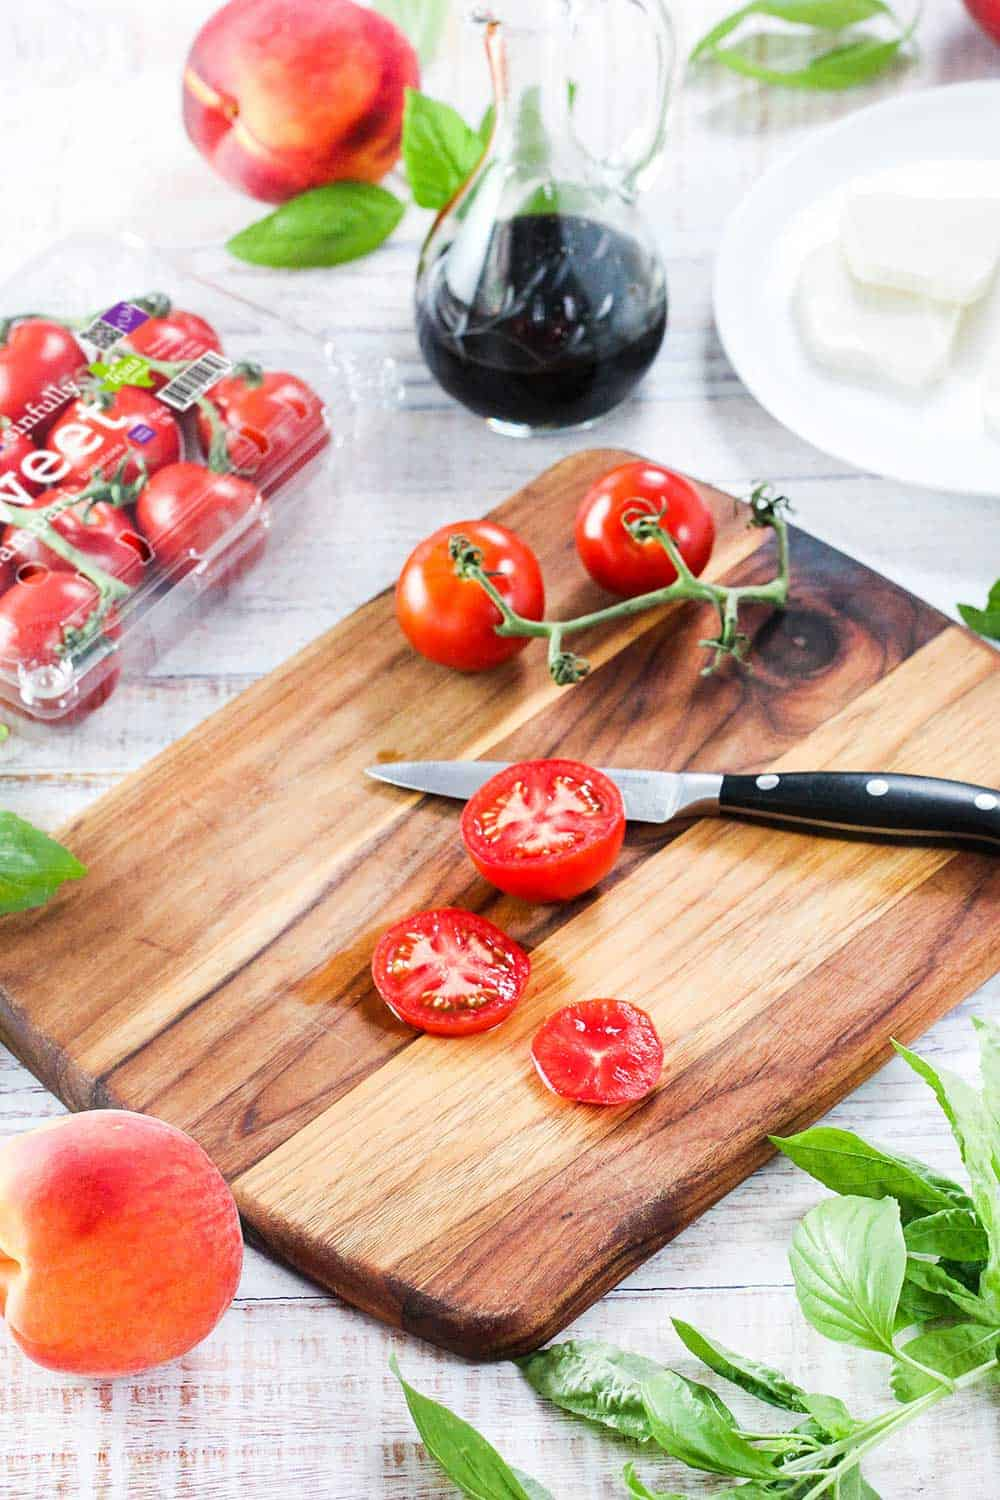 Sliced compari tomatoes on a wooden cutting board with basil nearby.